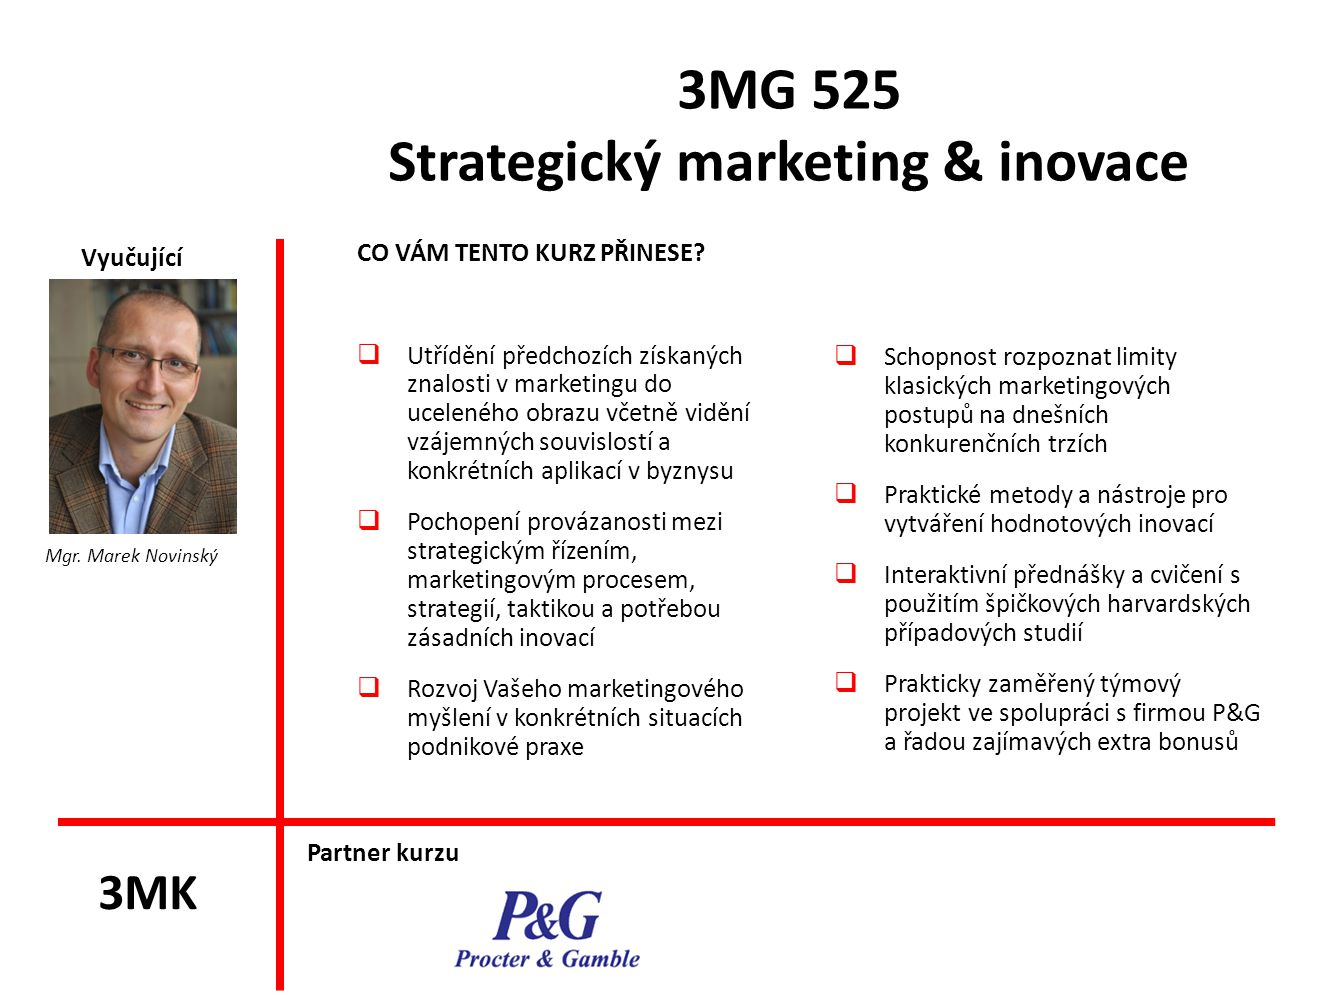 3MG 525 Strategický marketing & inovace